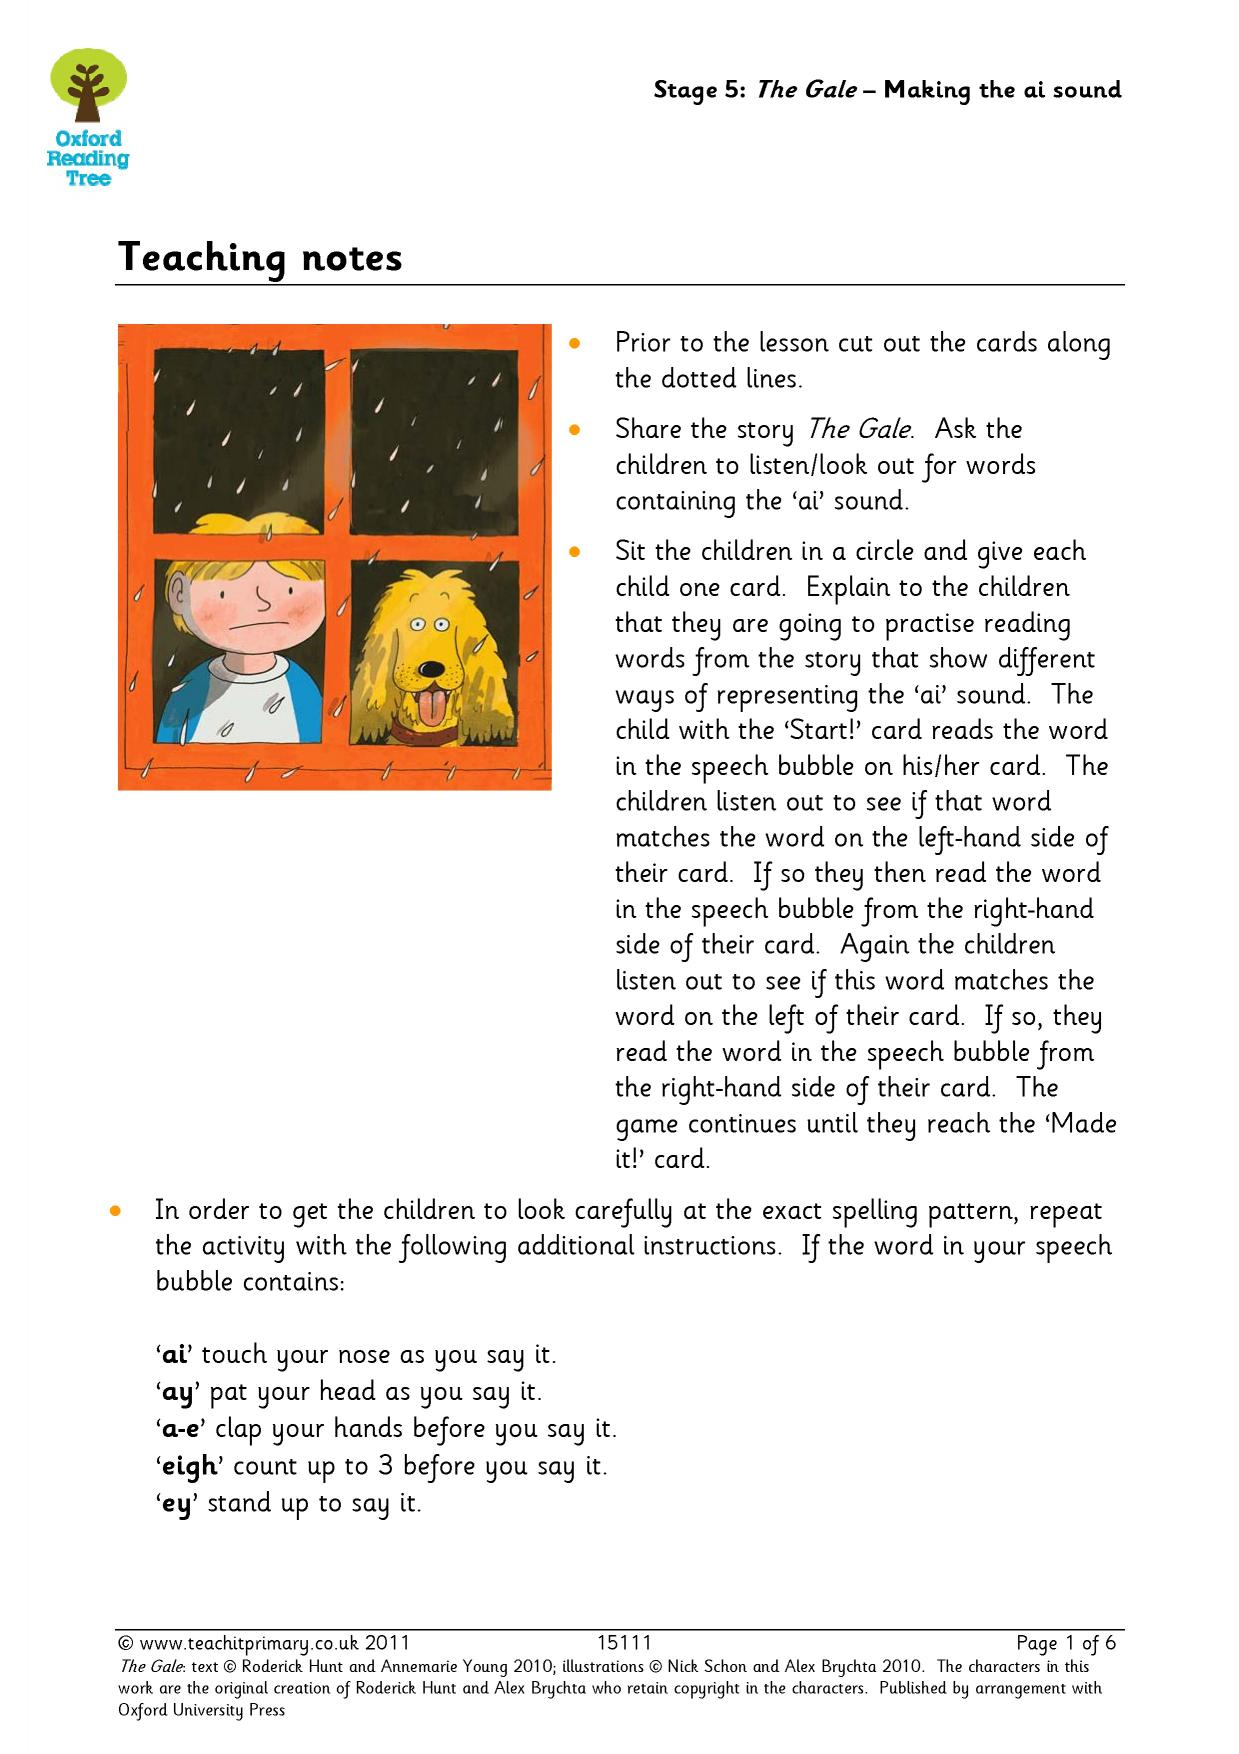 Oxford Reading Tree Resources